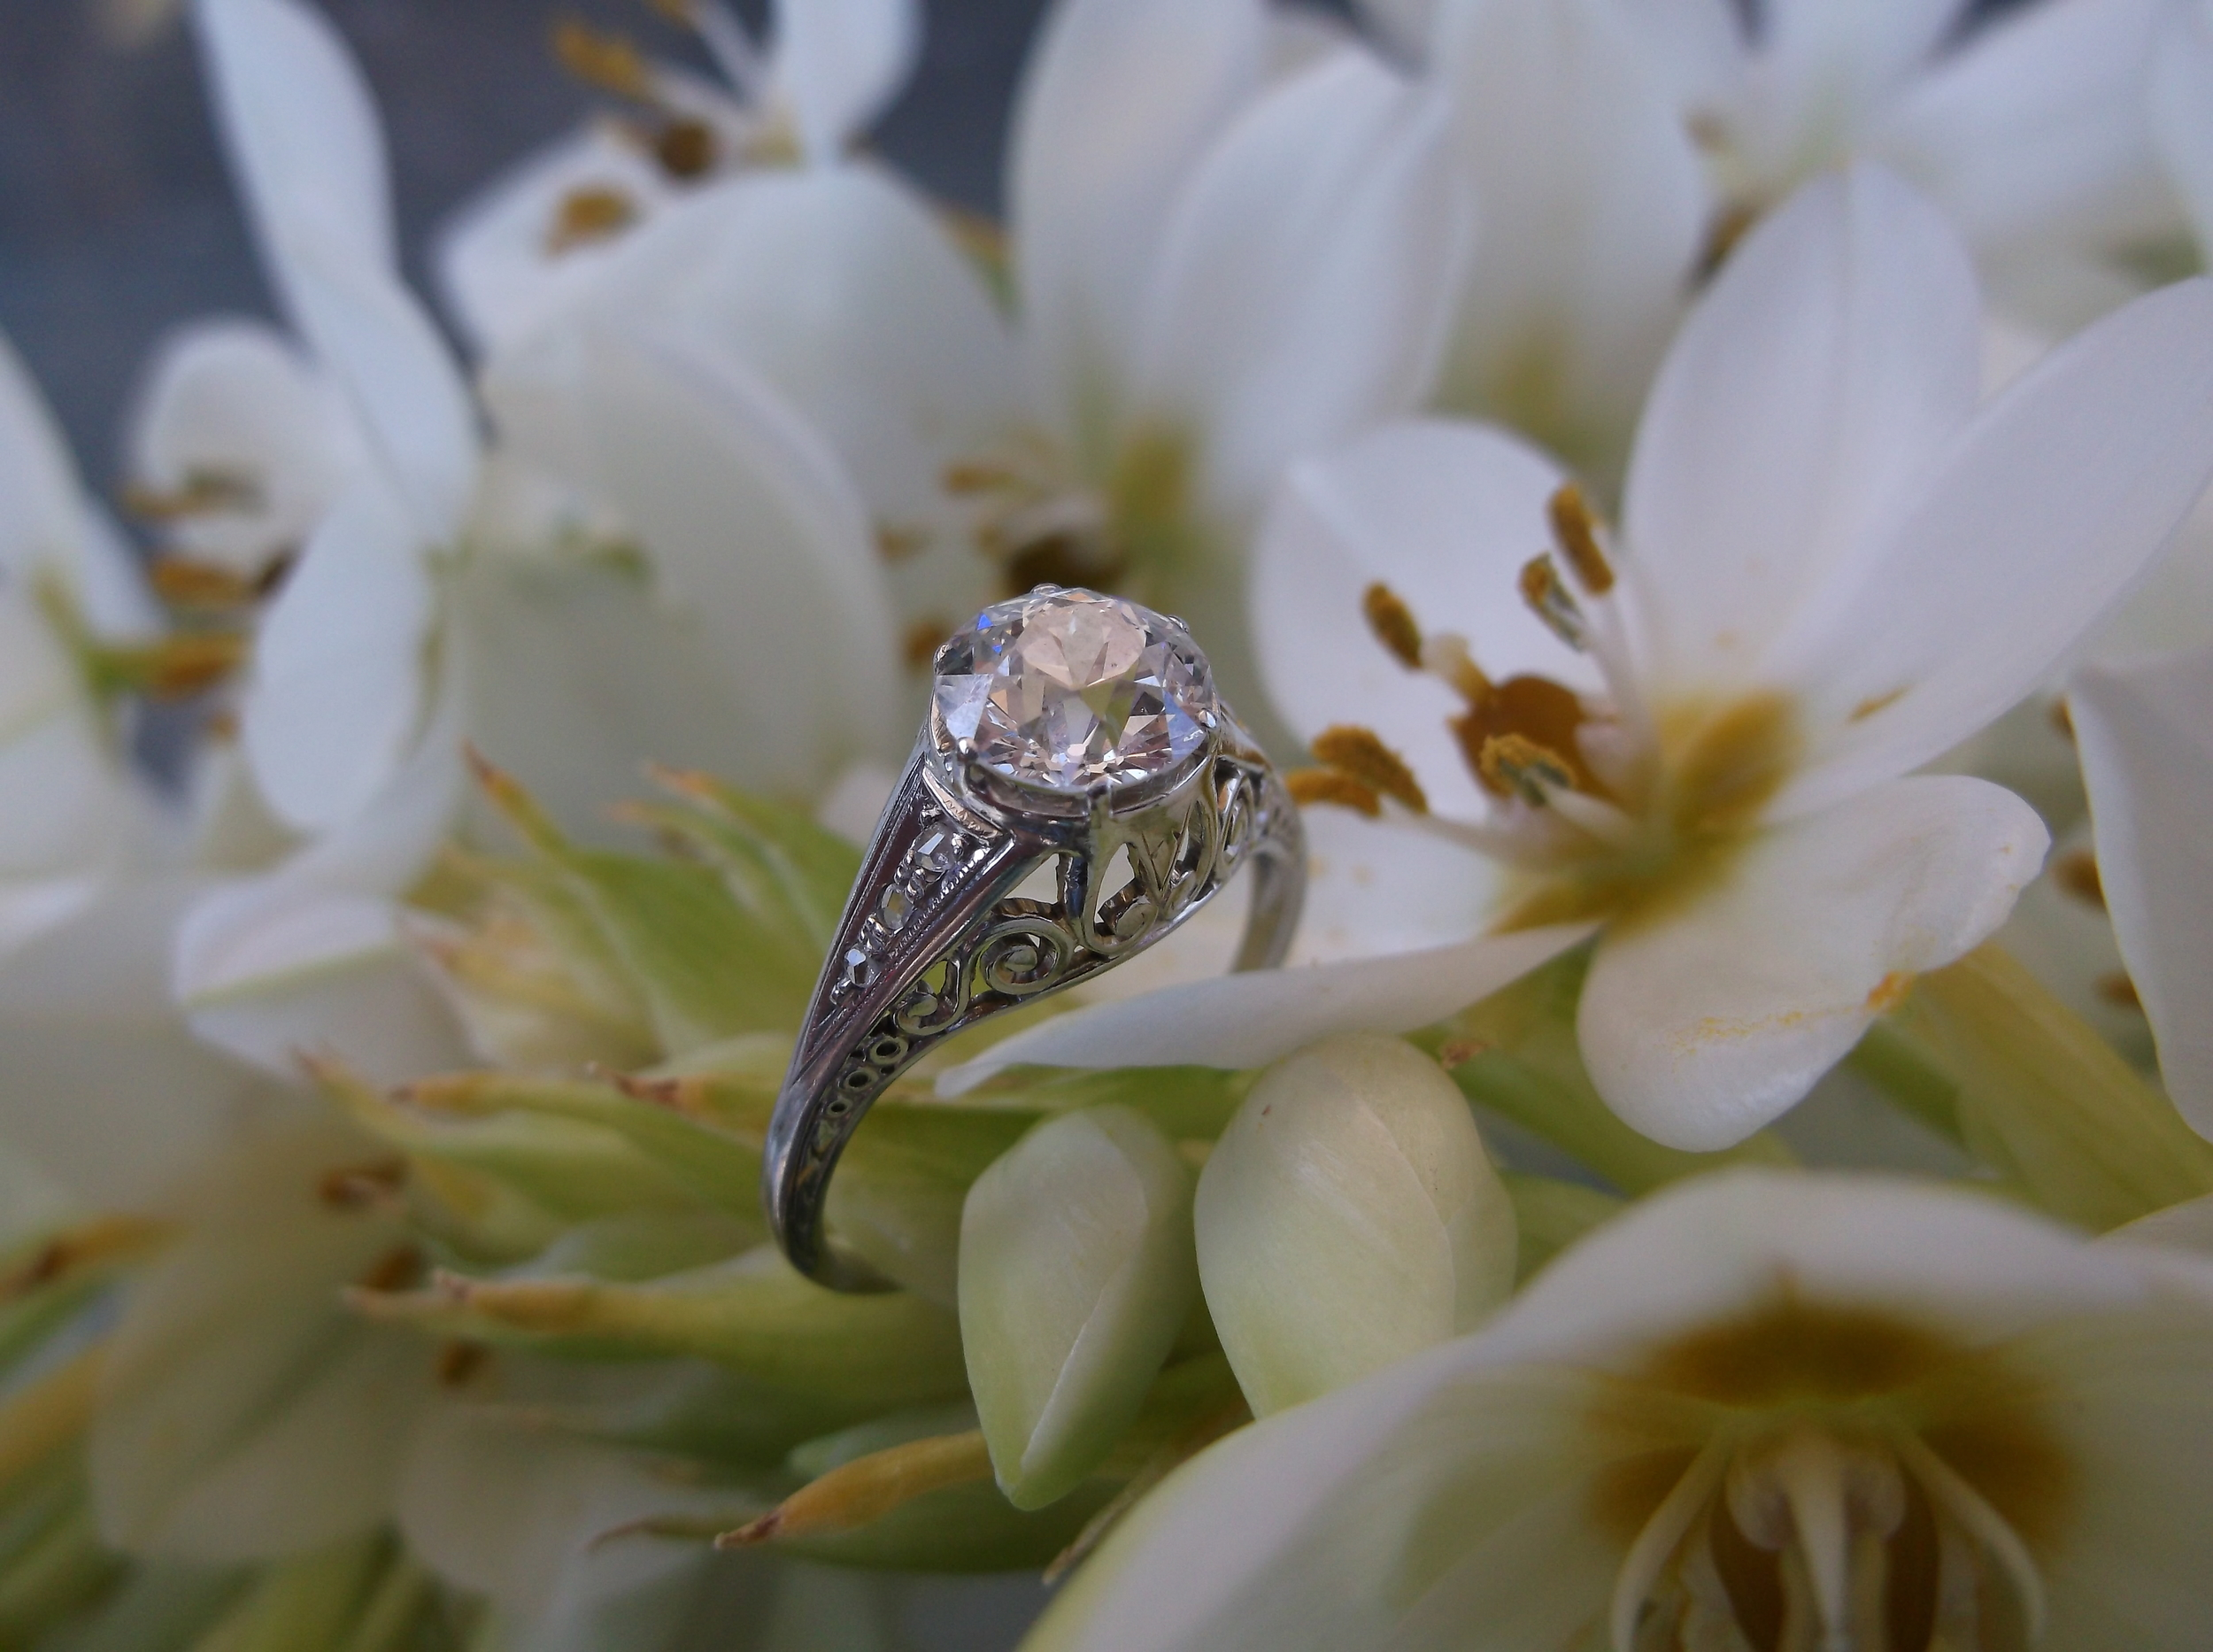 SOLD - Captivating 1920's 1.10 carat Old European cut diamond ring in a beautiful filigree and diamond detail mounting.